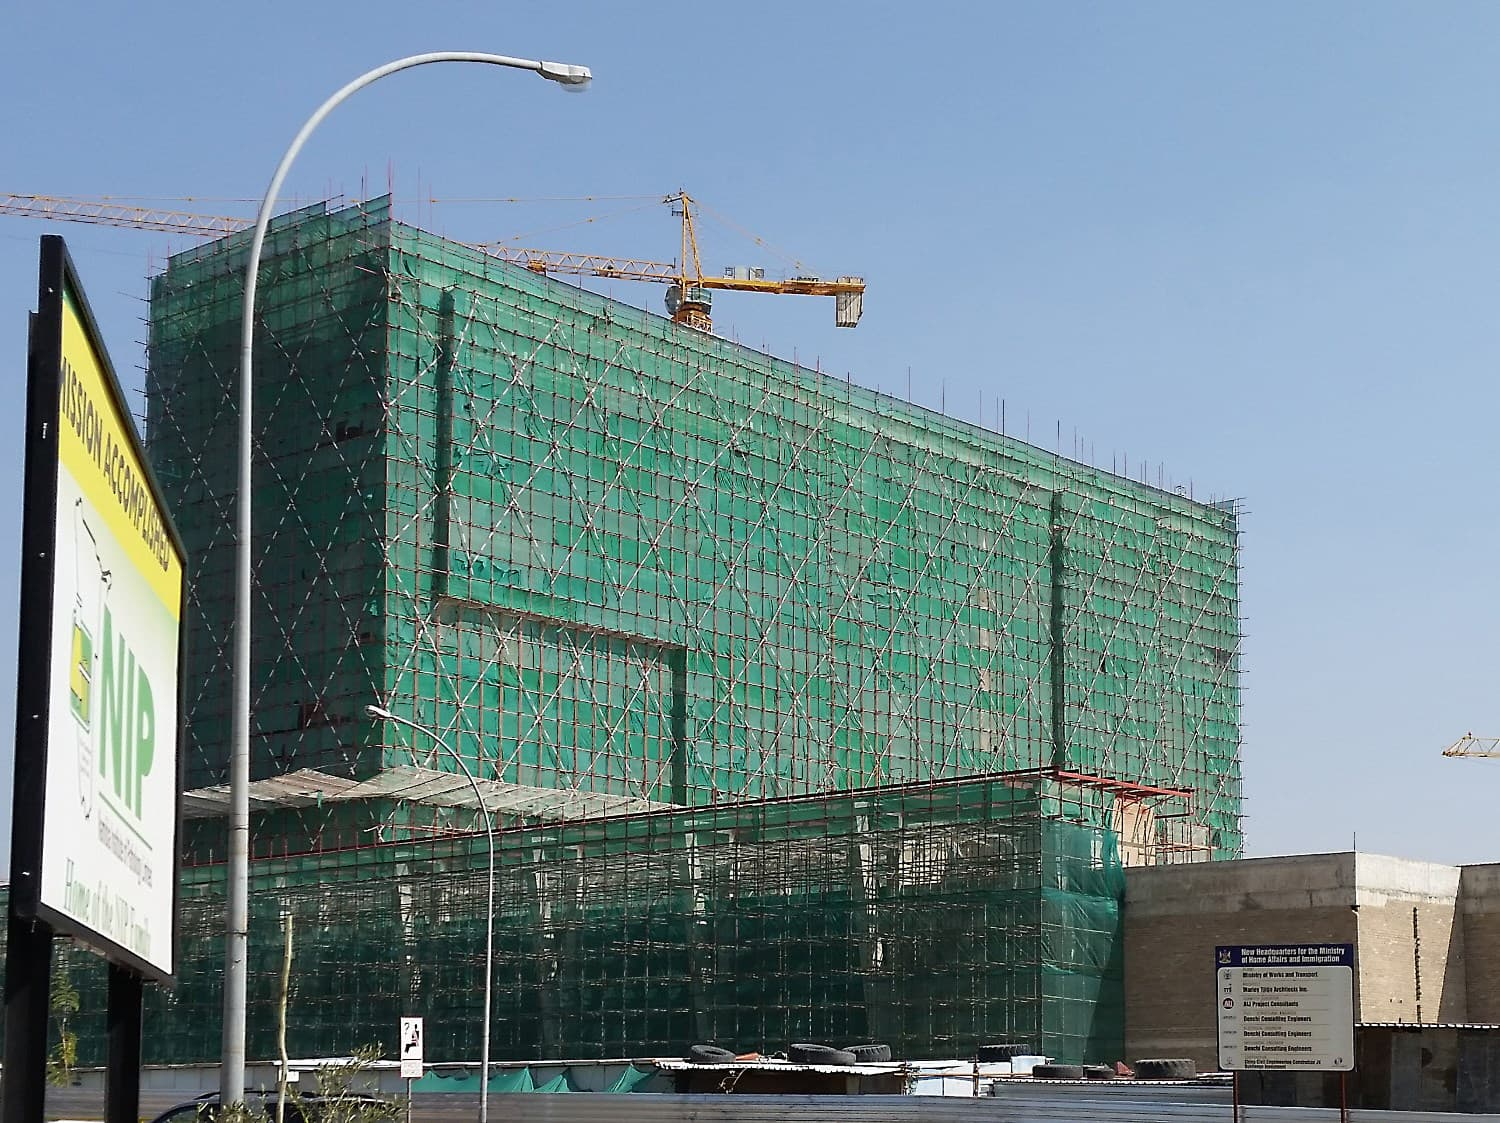 Ministry of Home Affairs in Windhoek waterproofed using abe construction chemicals CIP QuickSeal PP350